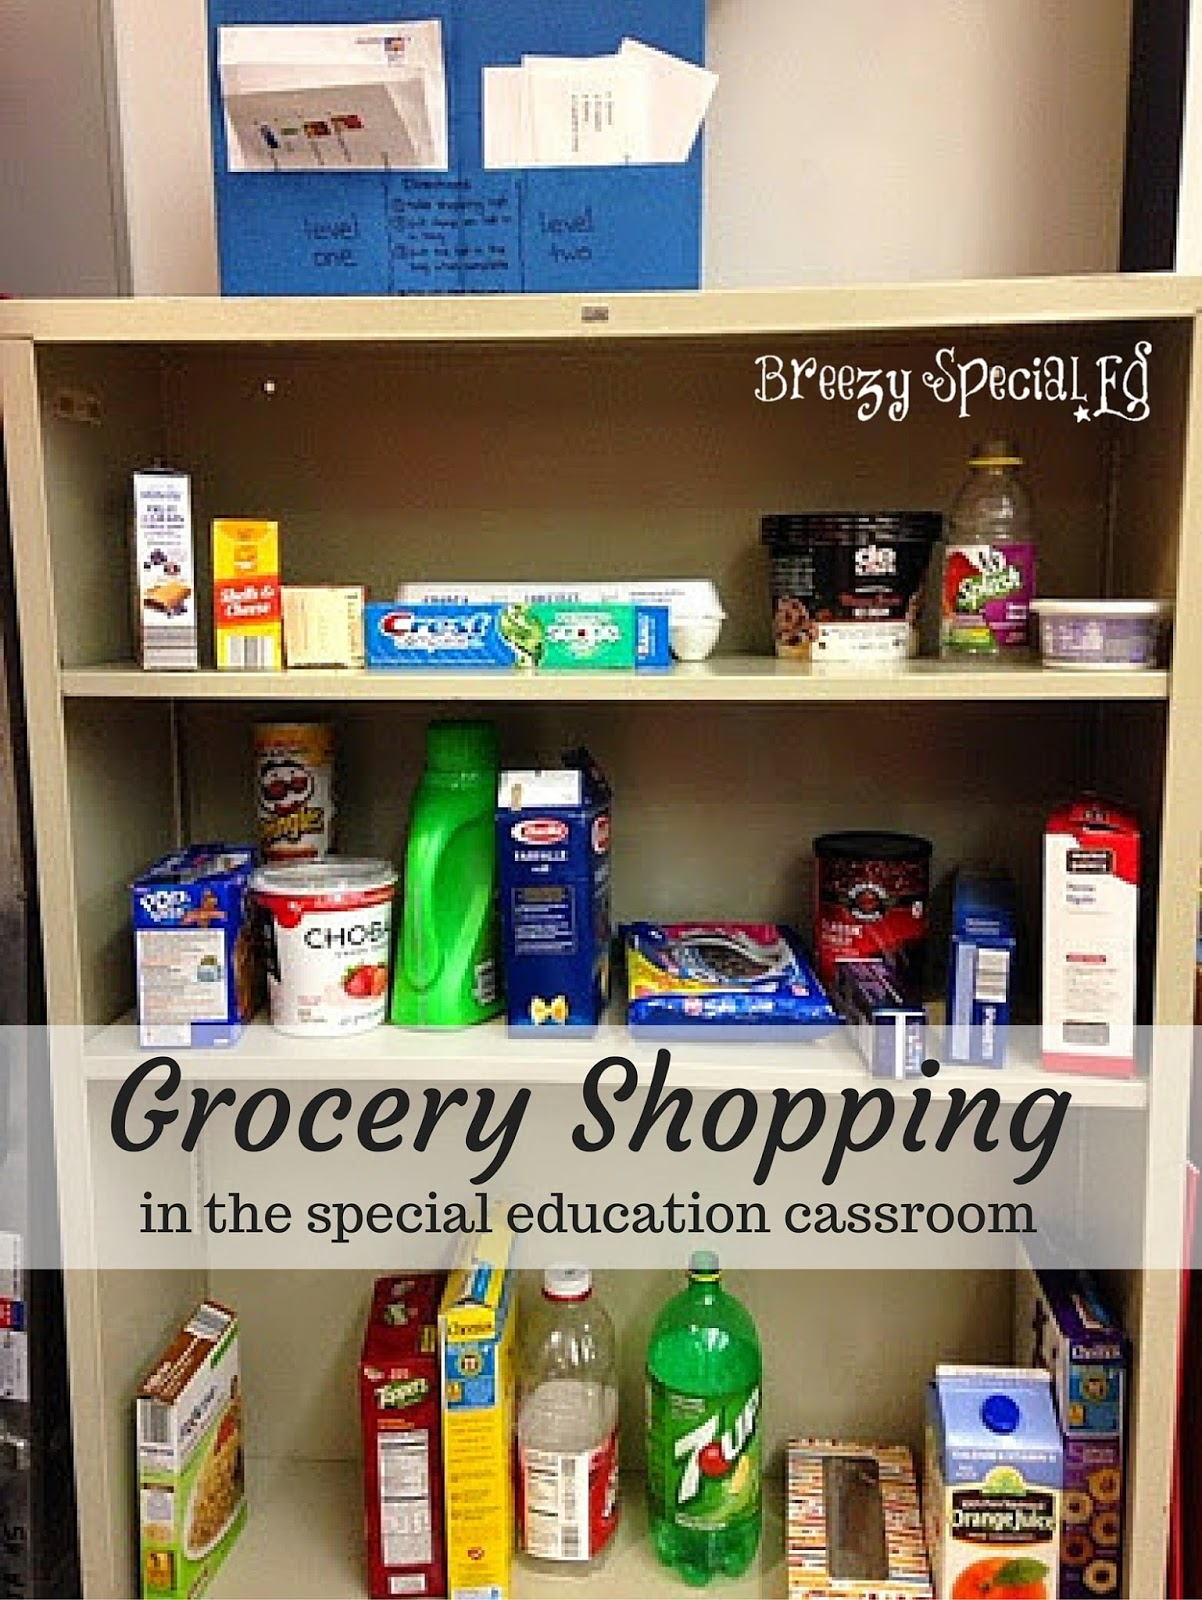 Grocery Shopping in the Classroom - Breezy Special Ed